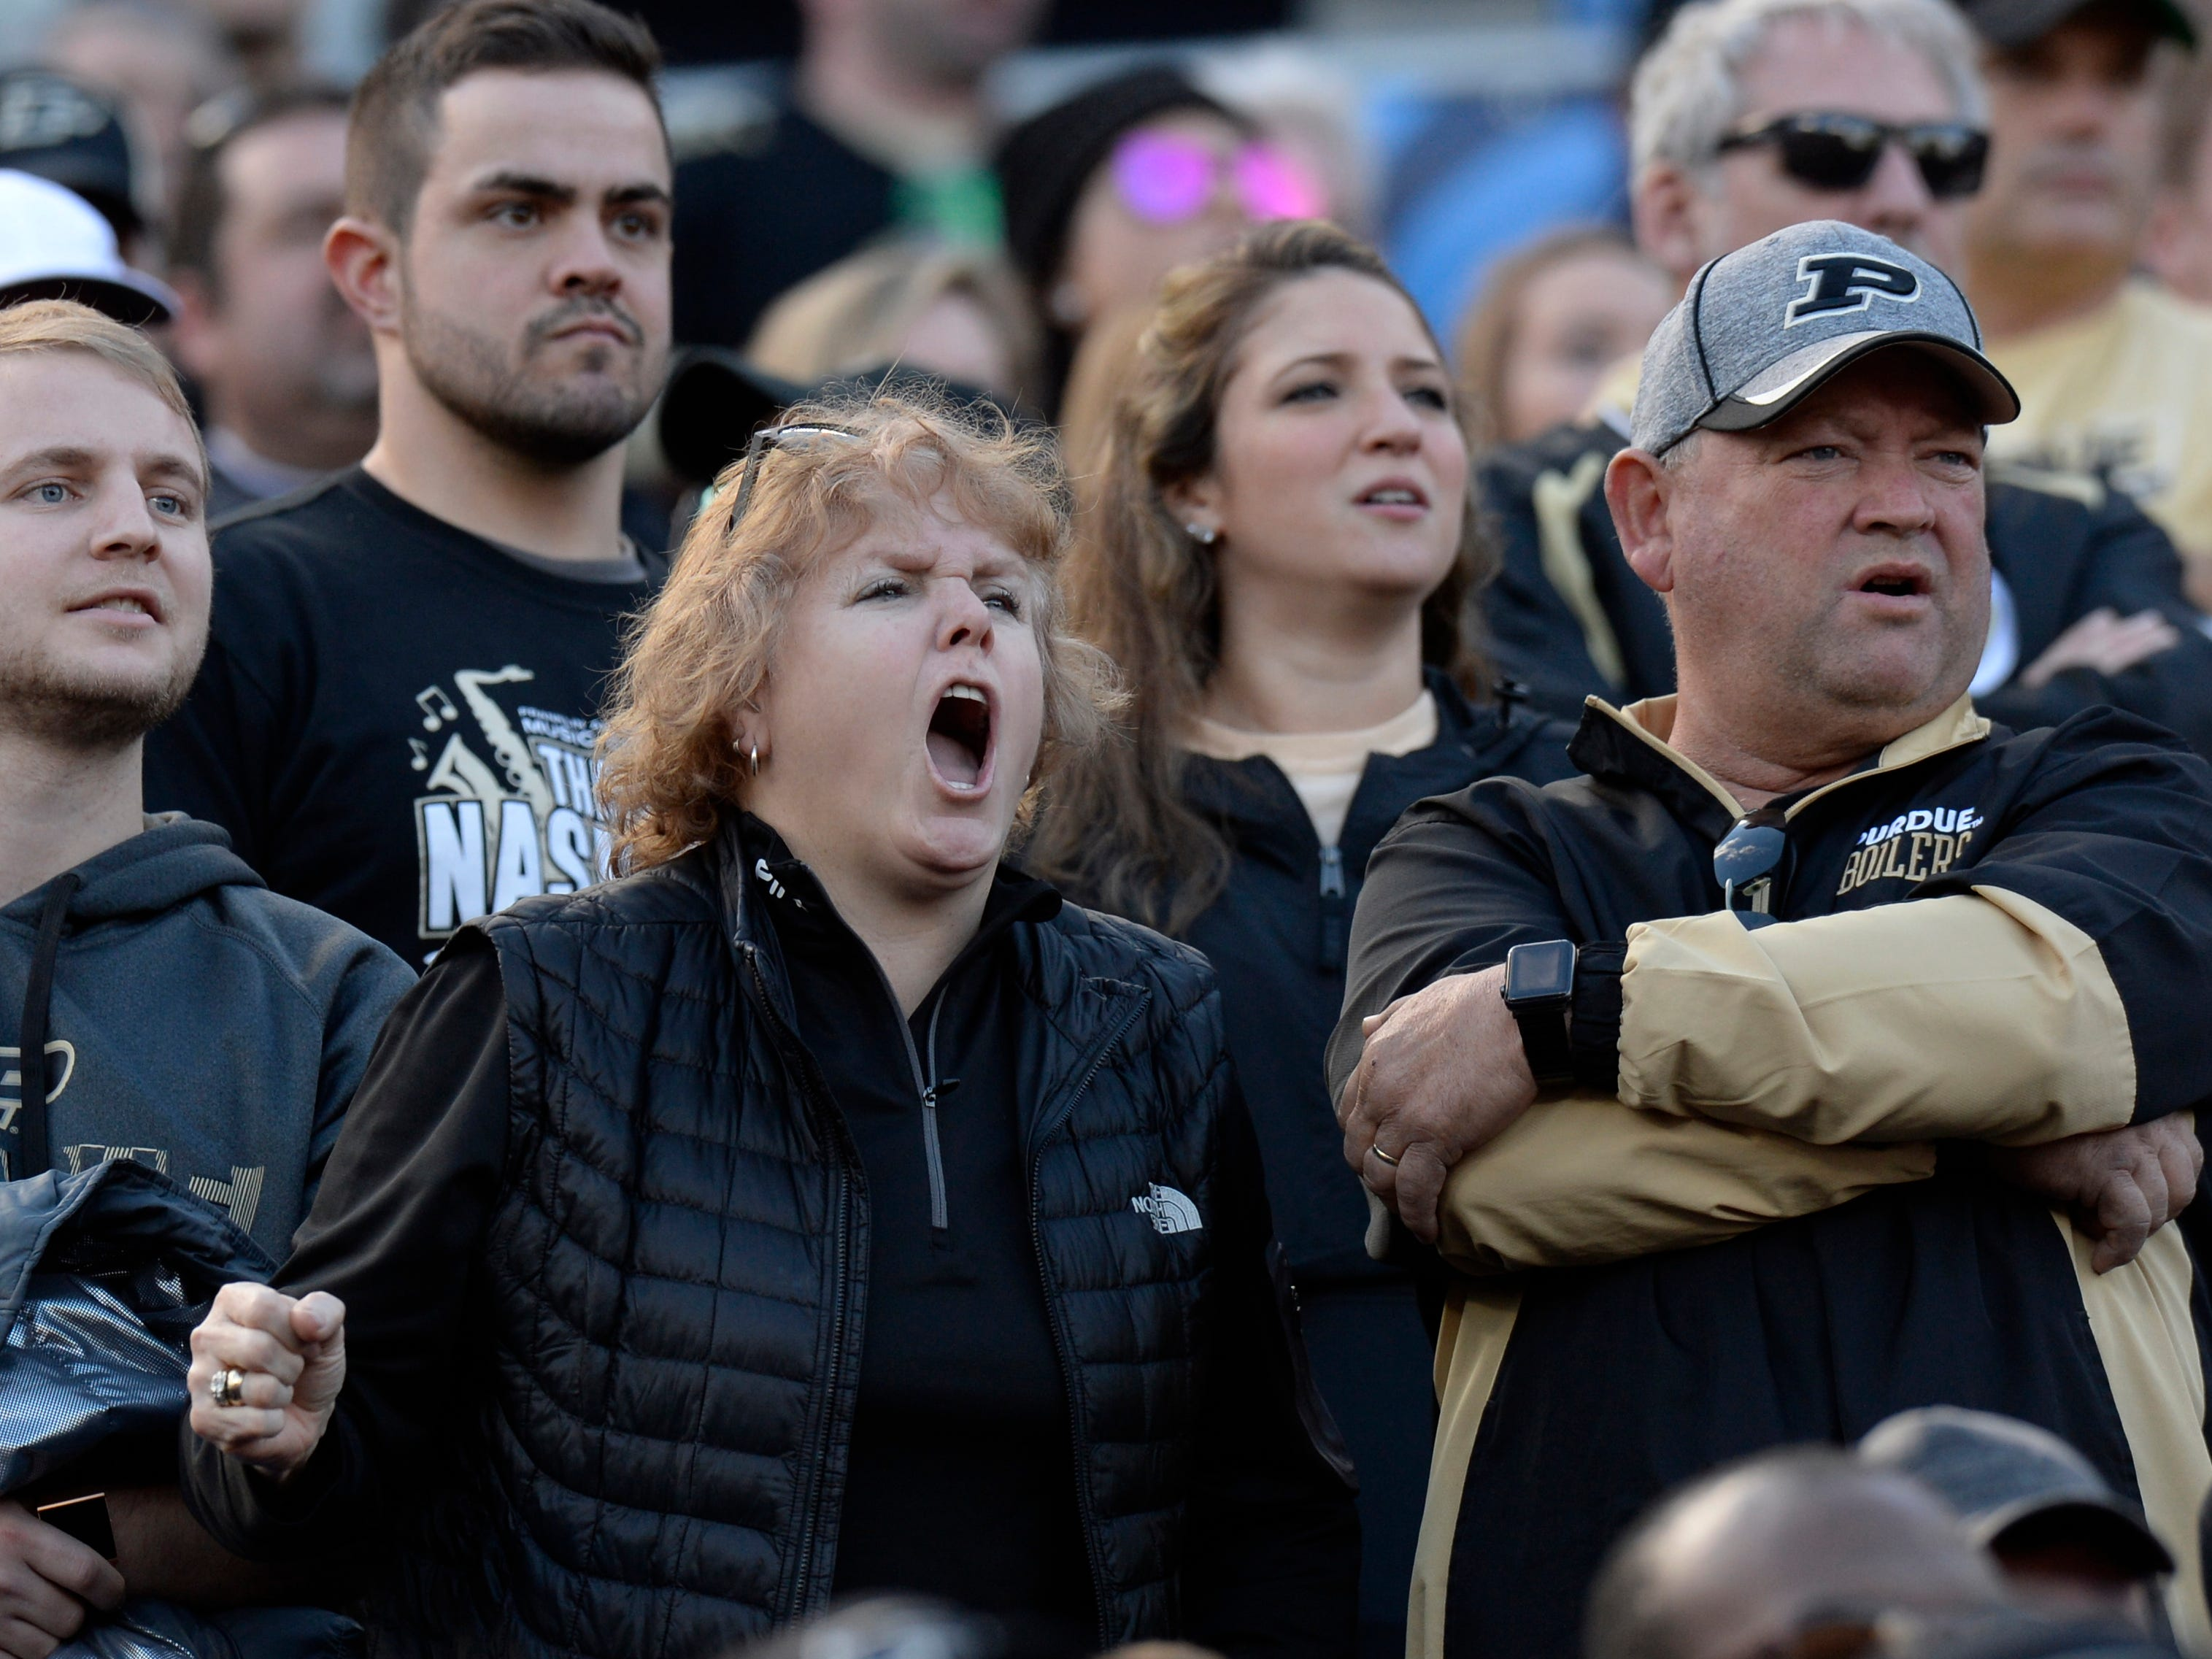 Purdue fans yell during the second quarter of the Music City Bowl NCAA college football game Friday, Dec. 28, 2018, at Nissan Stadium in Nashville, Tenn.